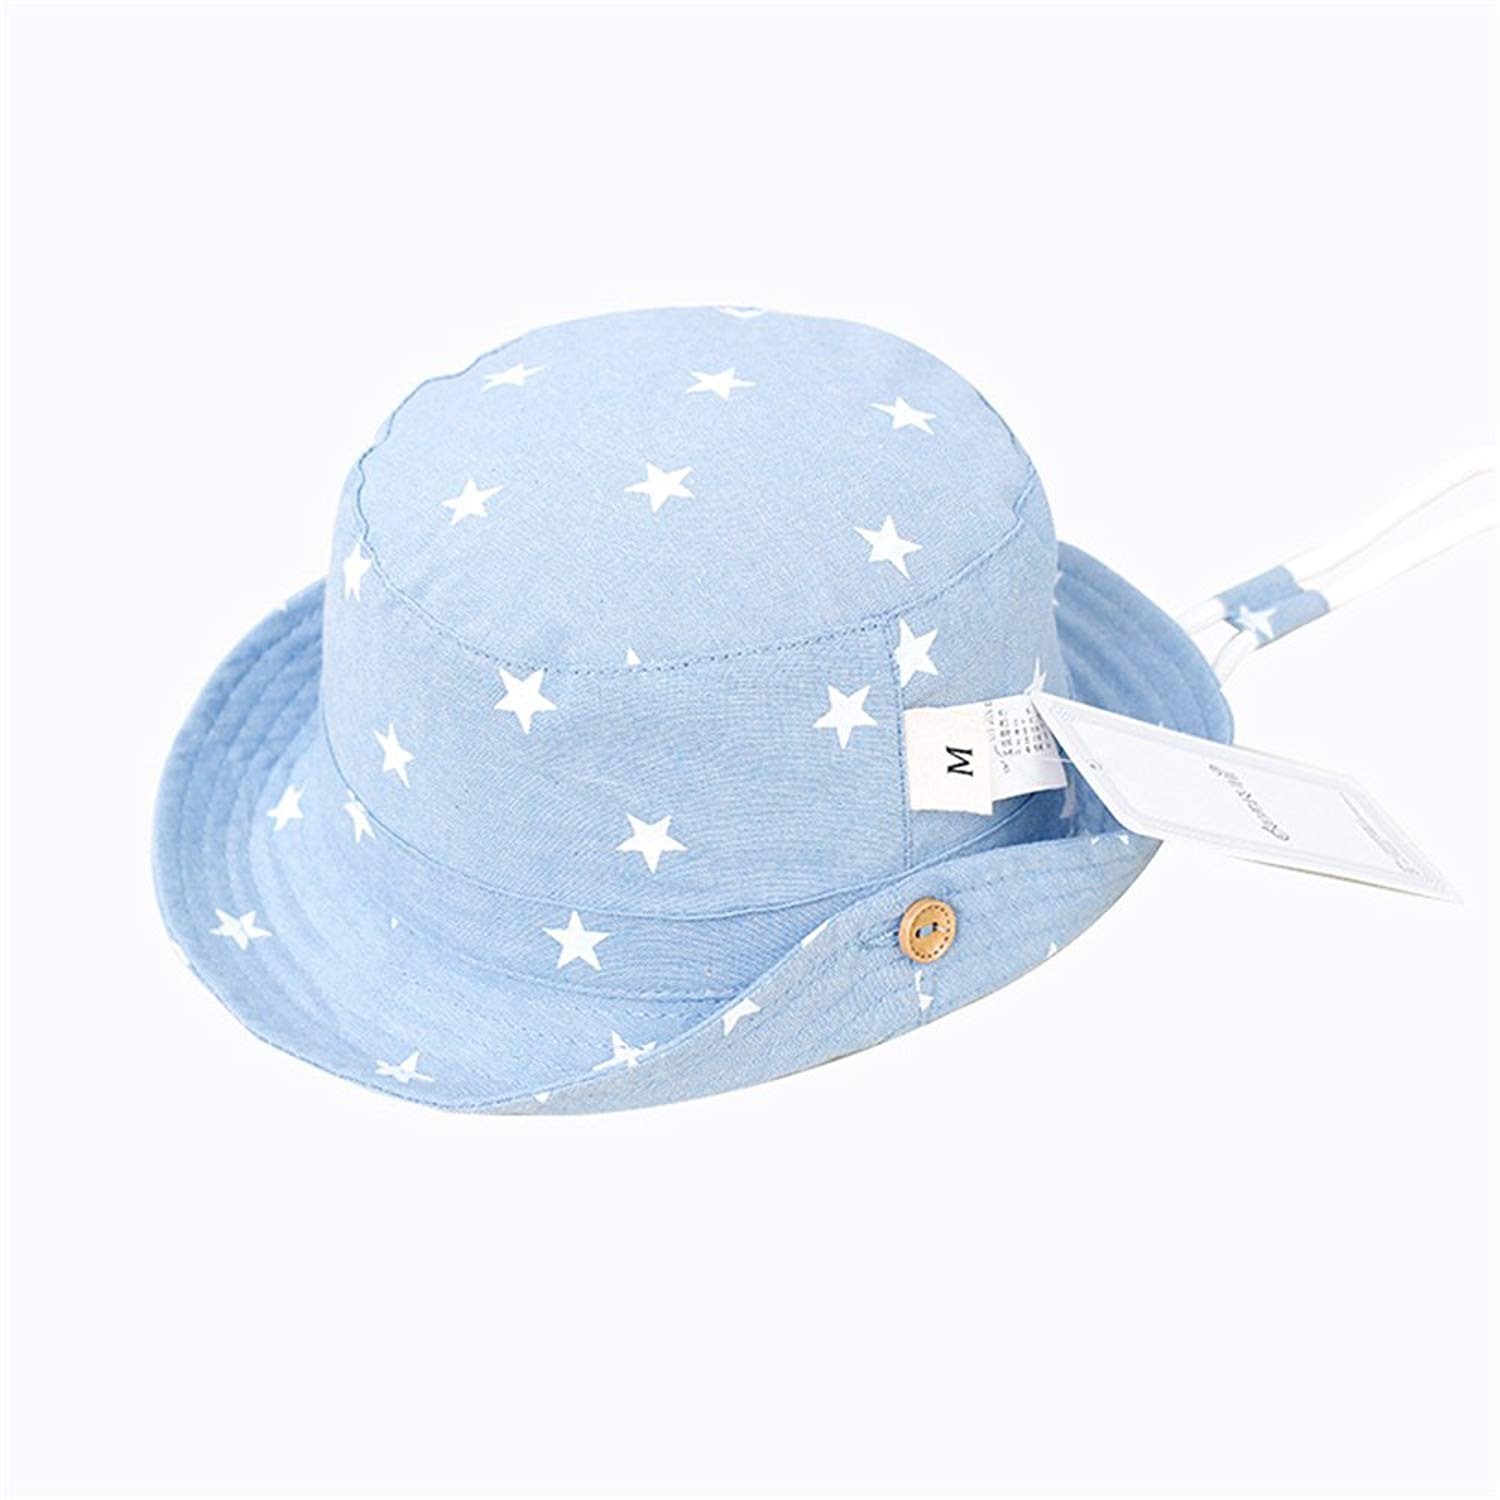 bf5a2692bc9 Get Quotations · EsTong Baby Girls Boys Kids Cowboy Play Sun Hats Caps  Reversible Brim Adjustable Drawstring